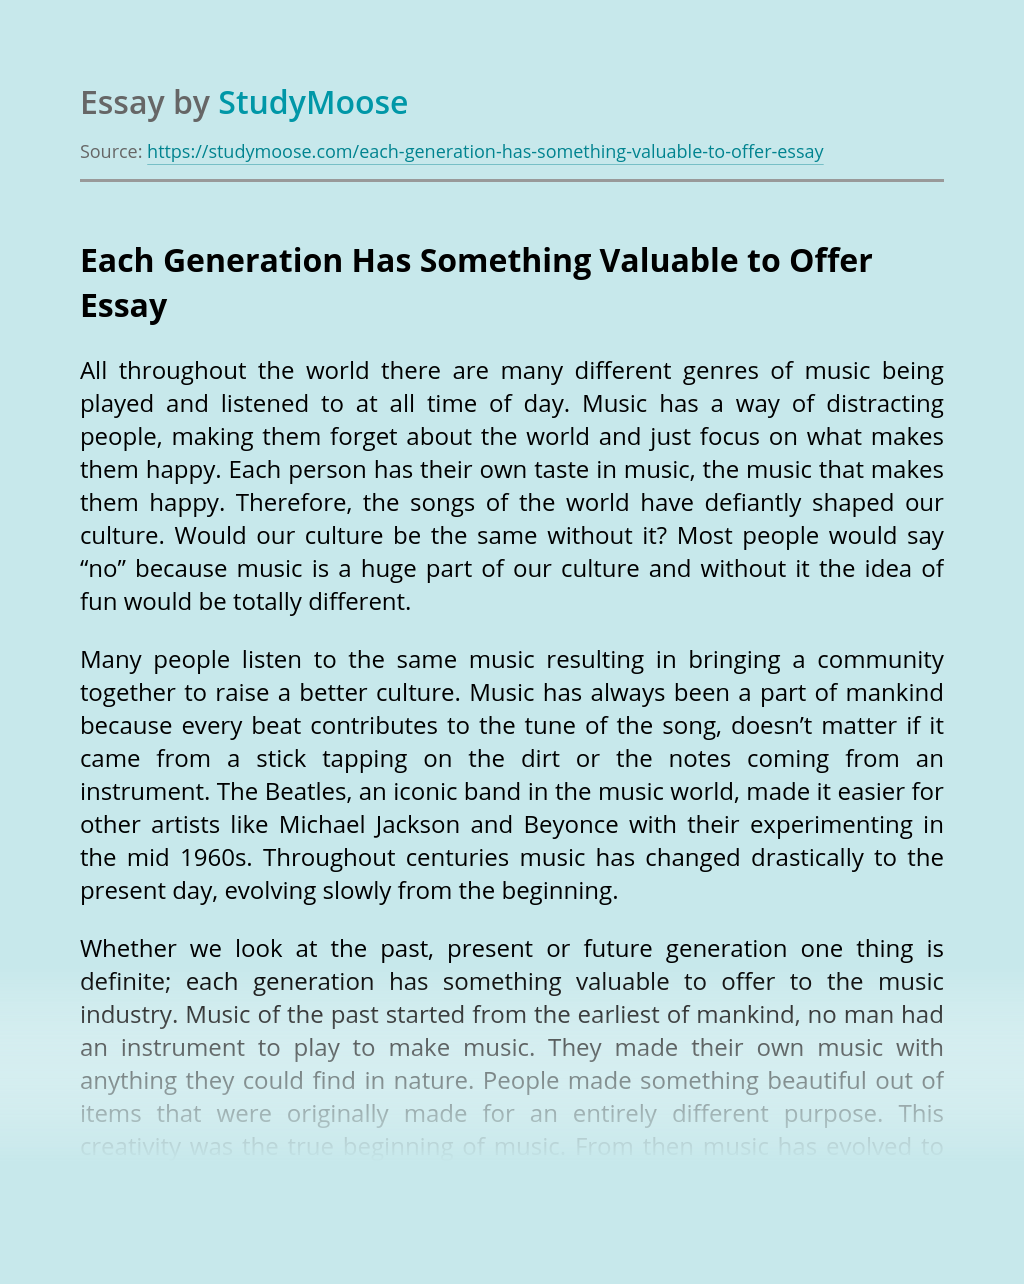 Each Generation Has Something Valuable to Offer